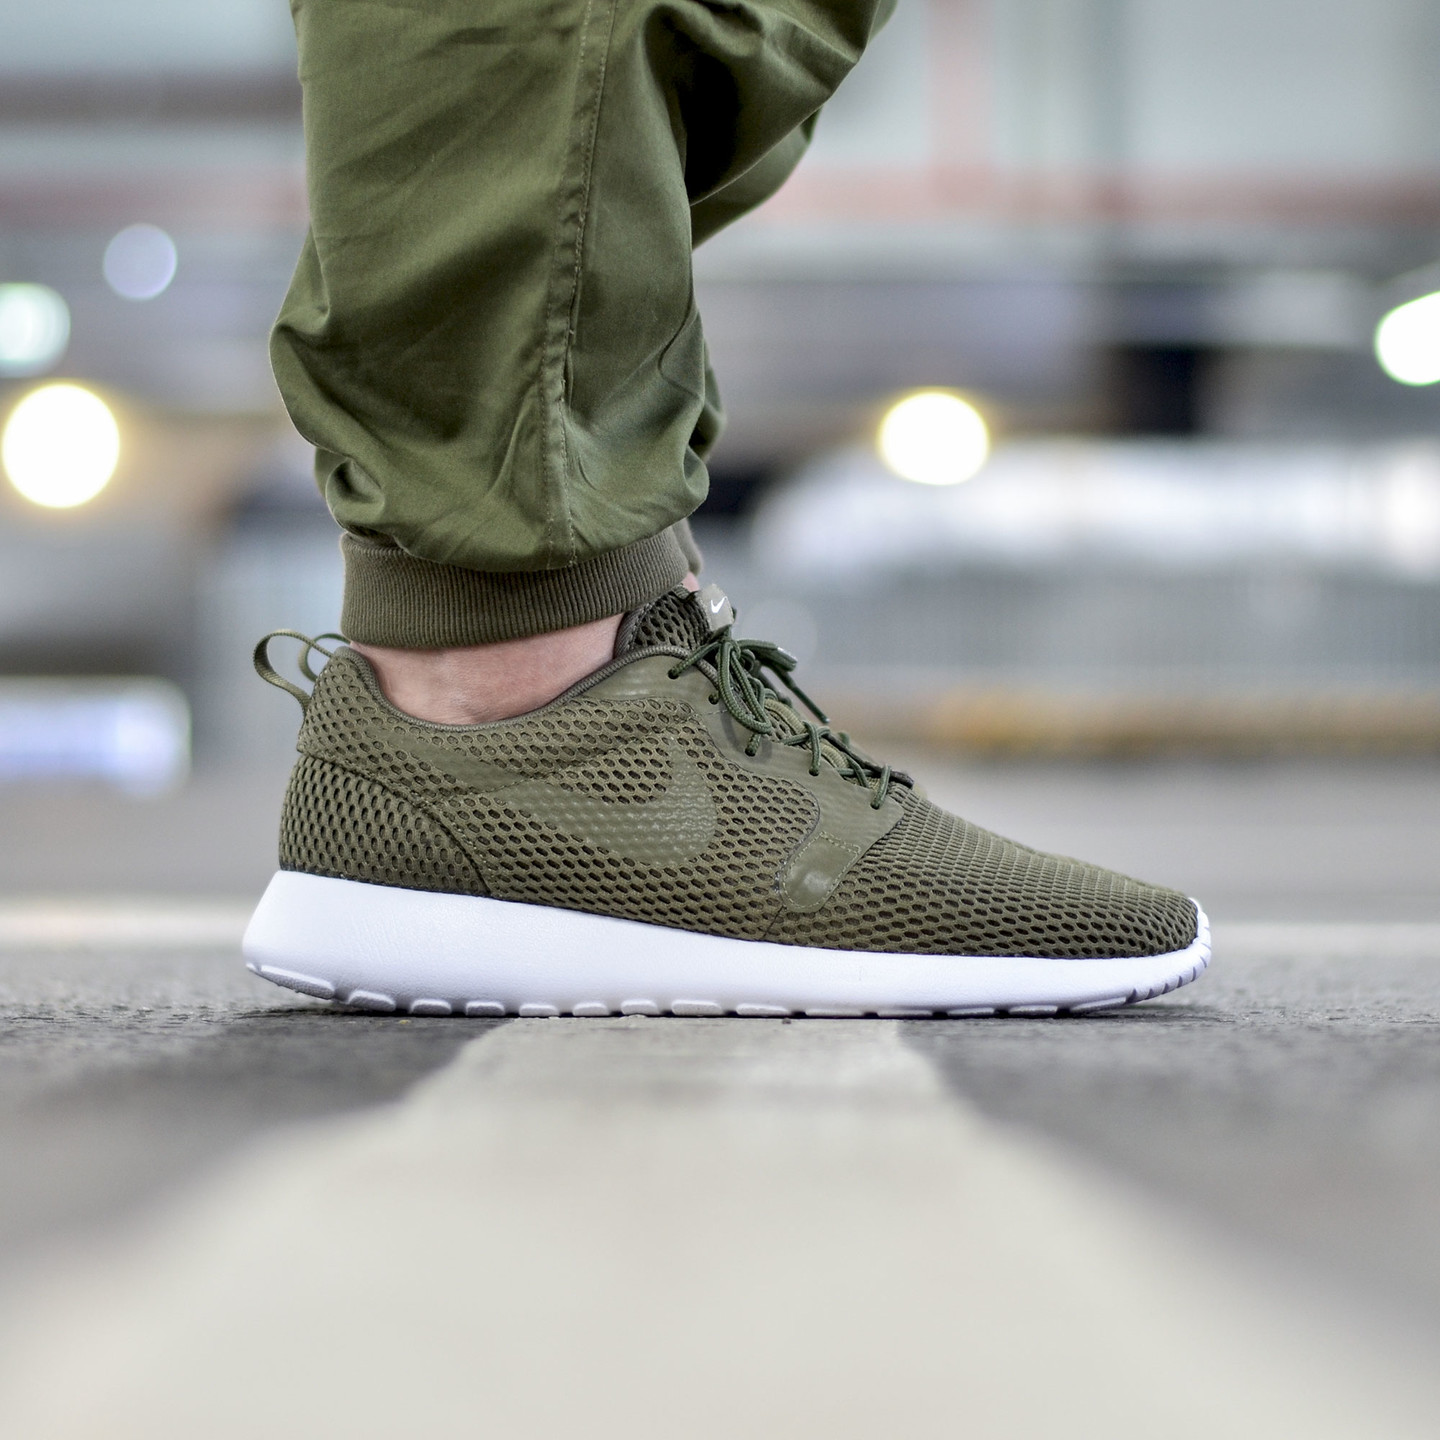 Nike Roshe One Hyperfuse BR Medium Olive / White 833125-200-46